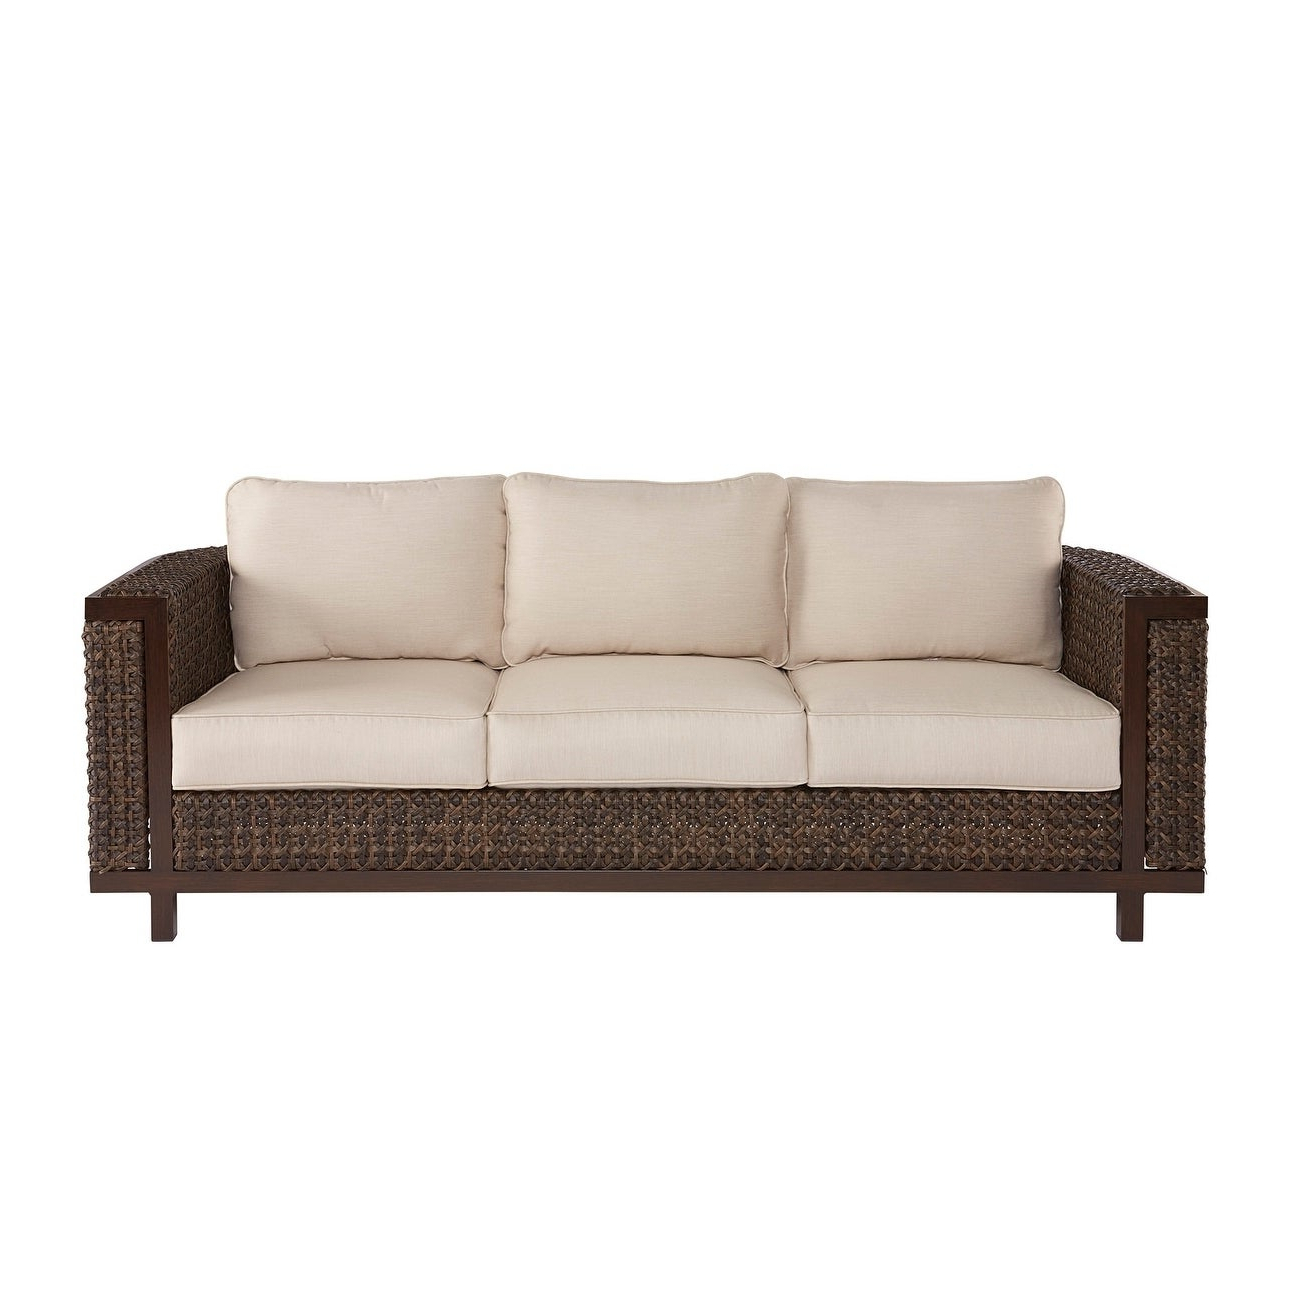 Trendy Brentwood Patio Sofas With Cushions Intended For A.r.t (View 15 of 18)